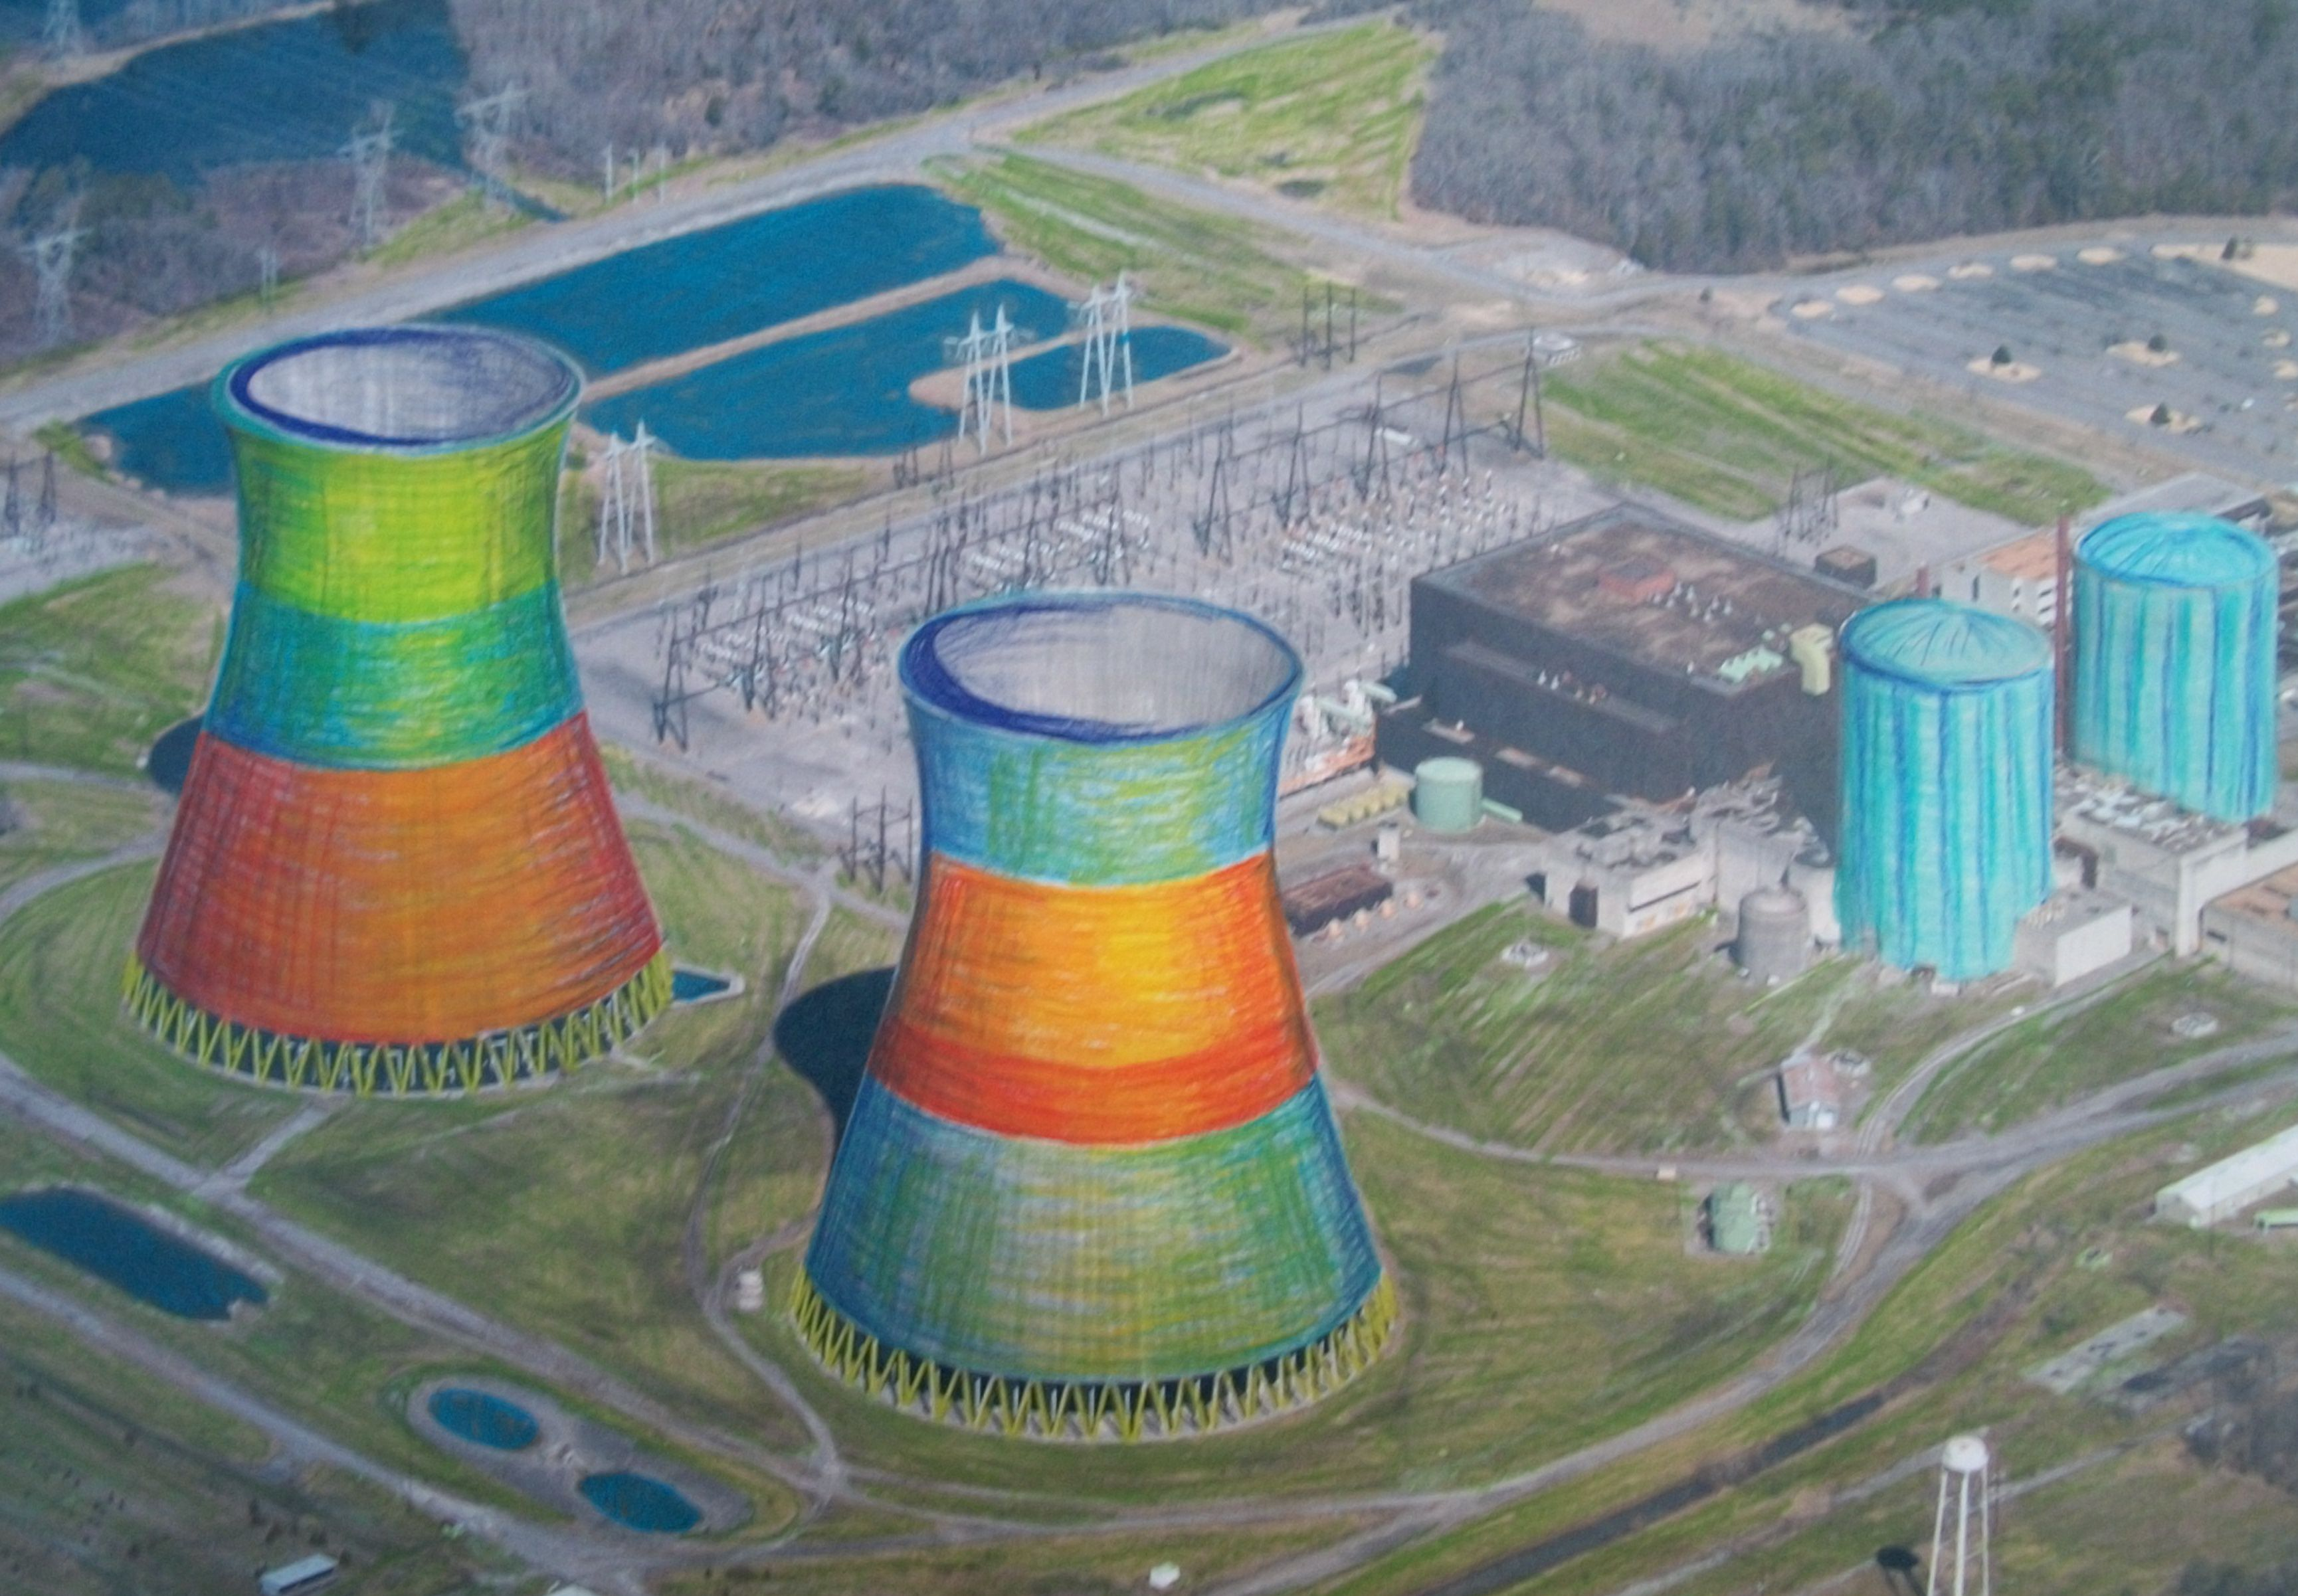 color field Nuclear cooling tower artwork by PopAtomic Studios